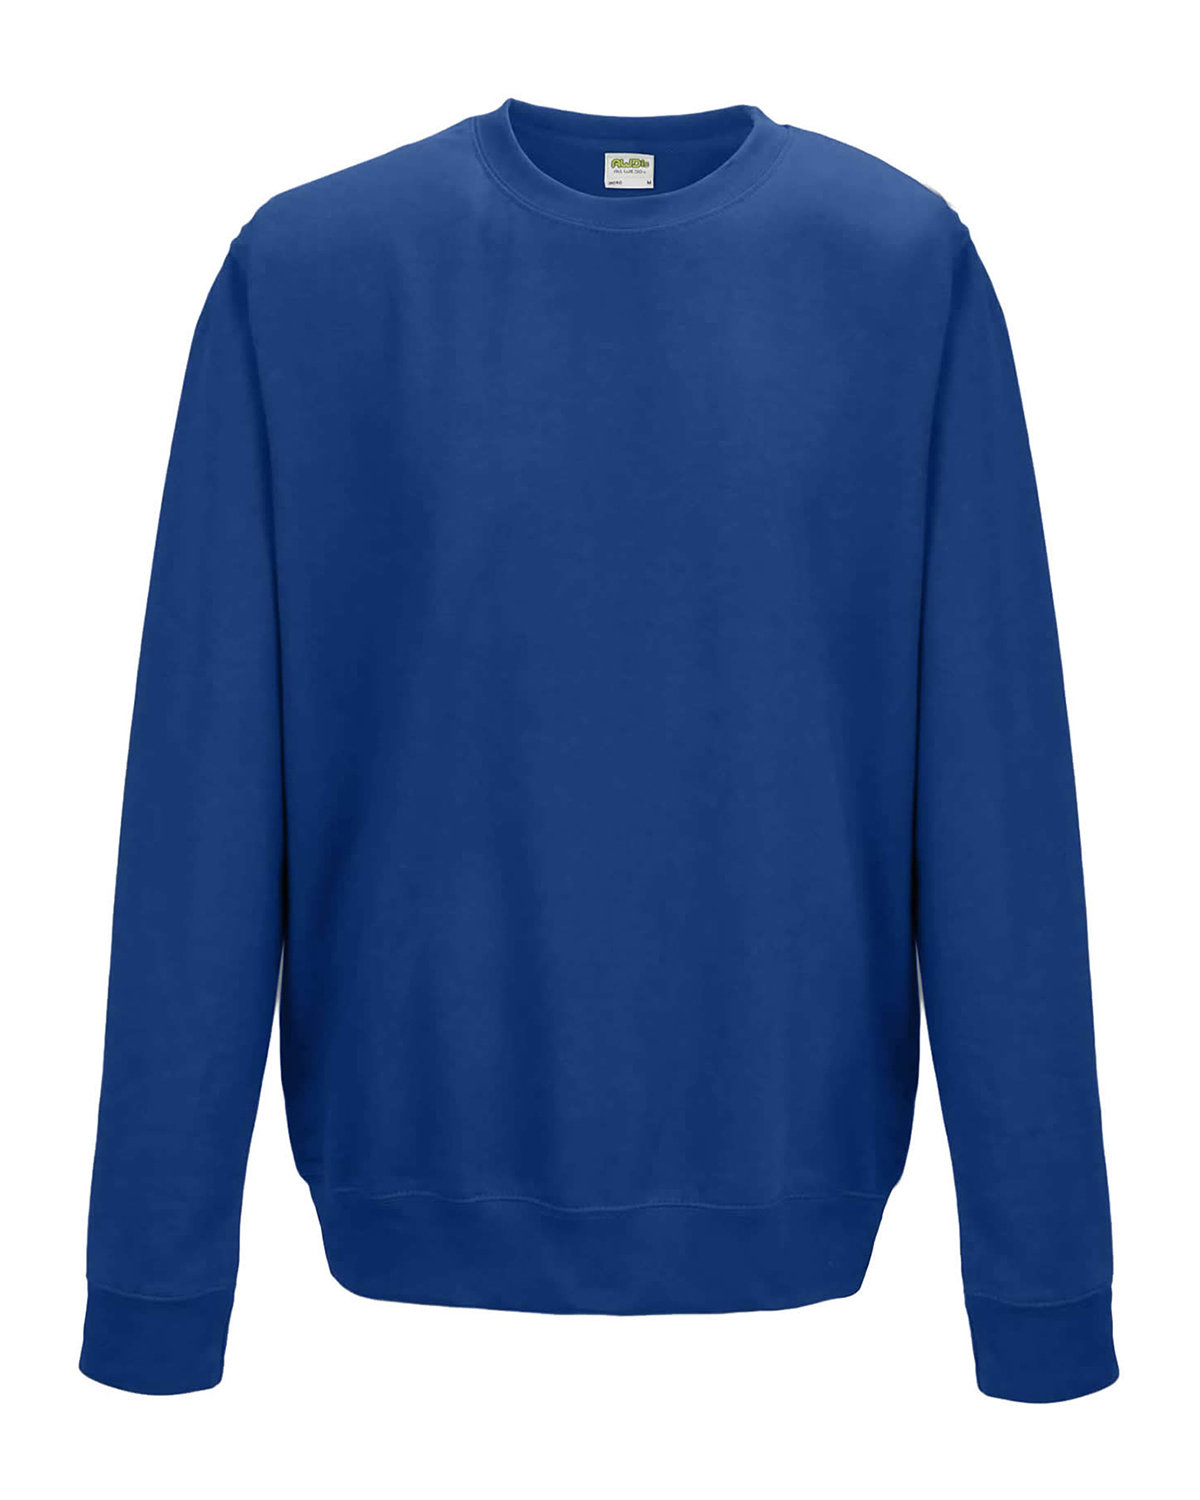 Just Hoods By AWDis Adult 80/20 Midweight College Crewneck Sweatshirt ROYAL BLUE